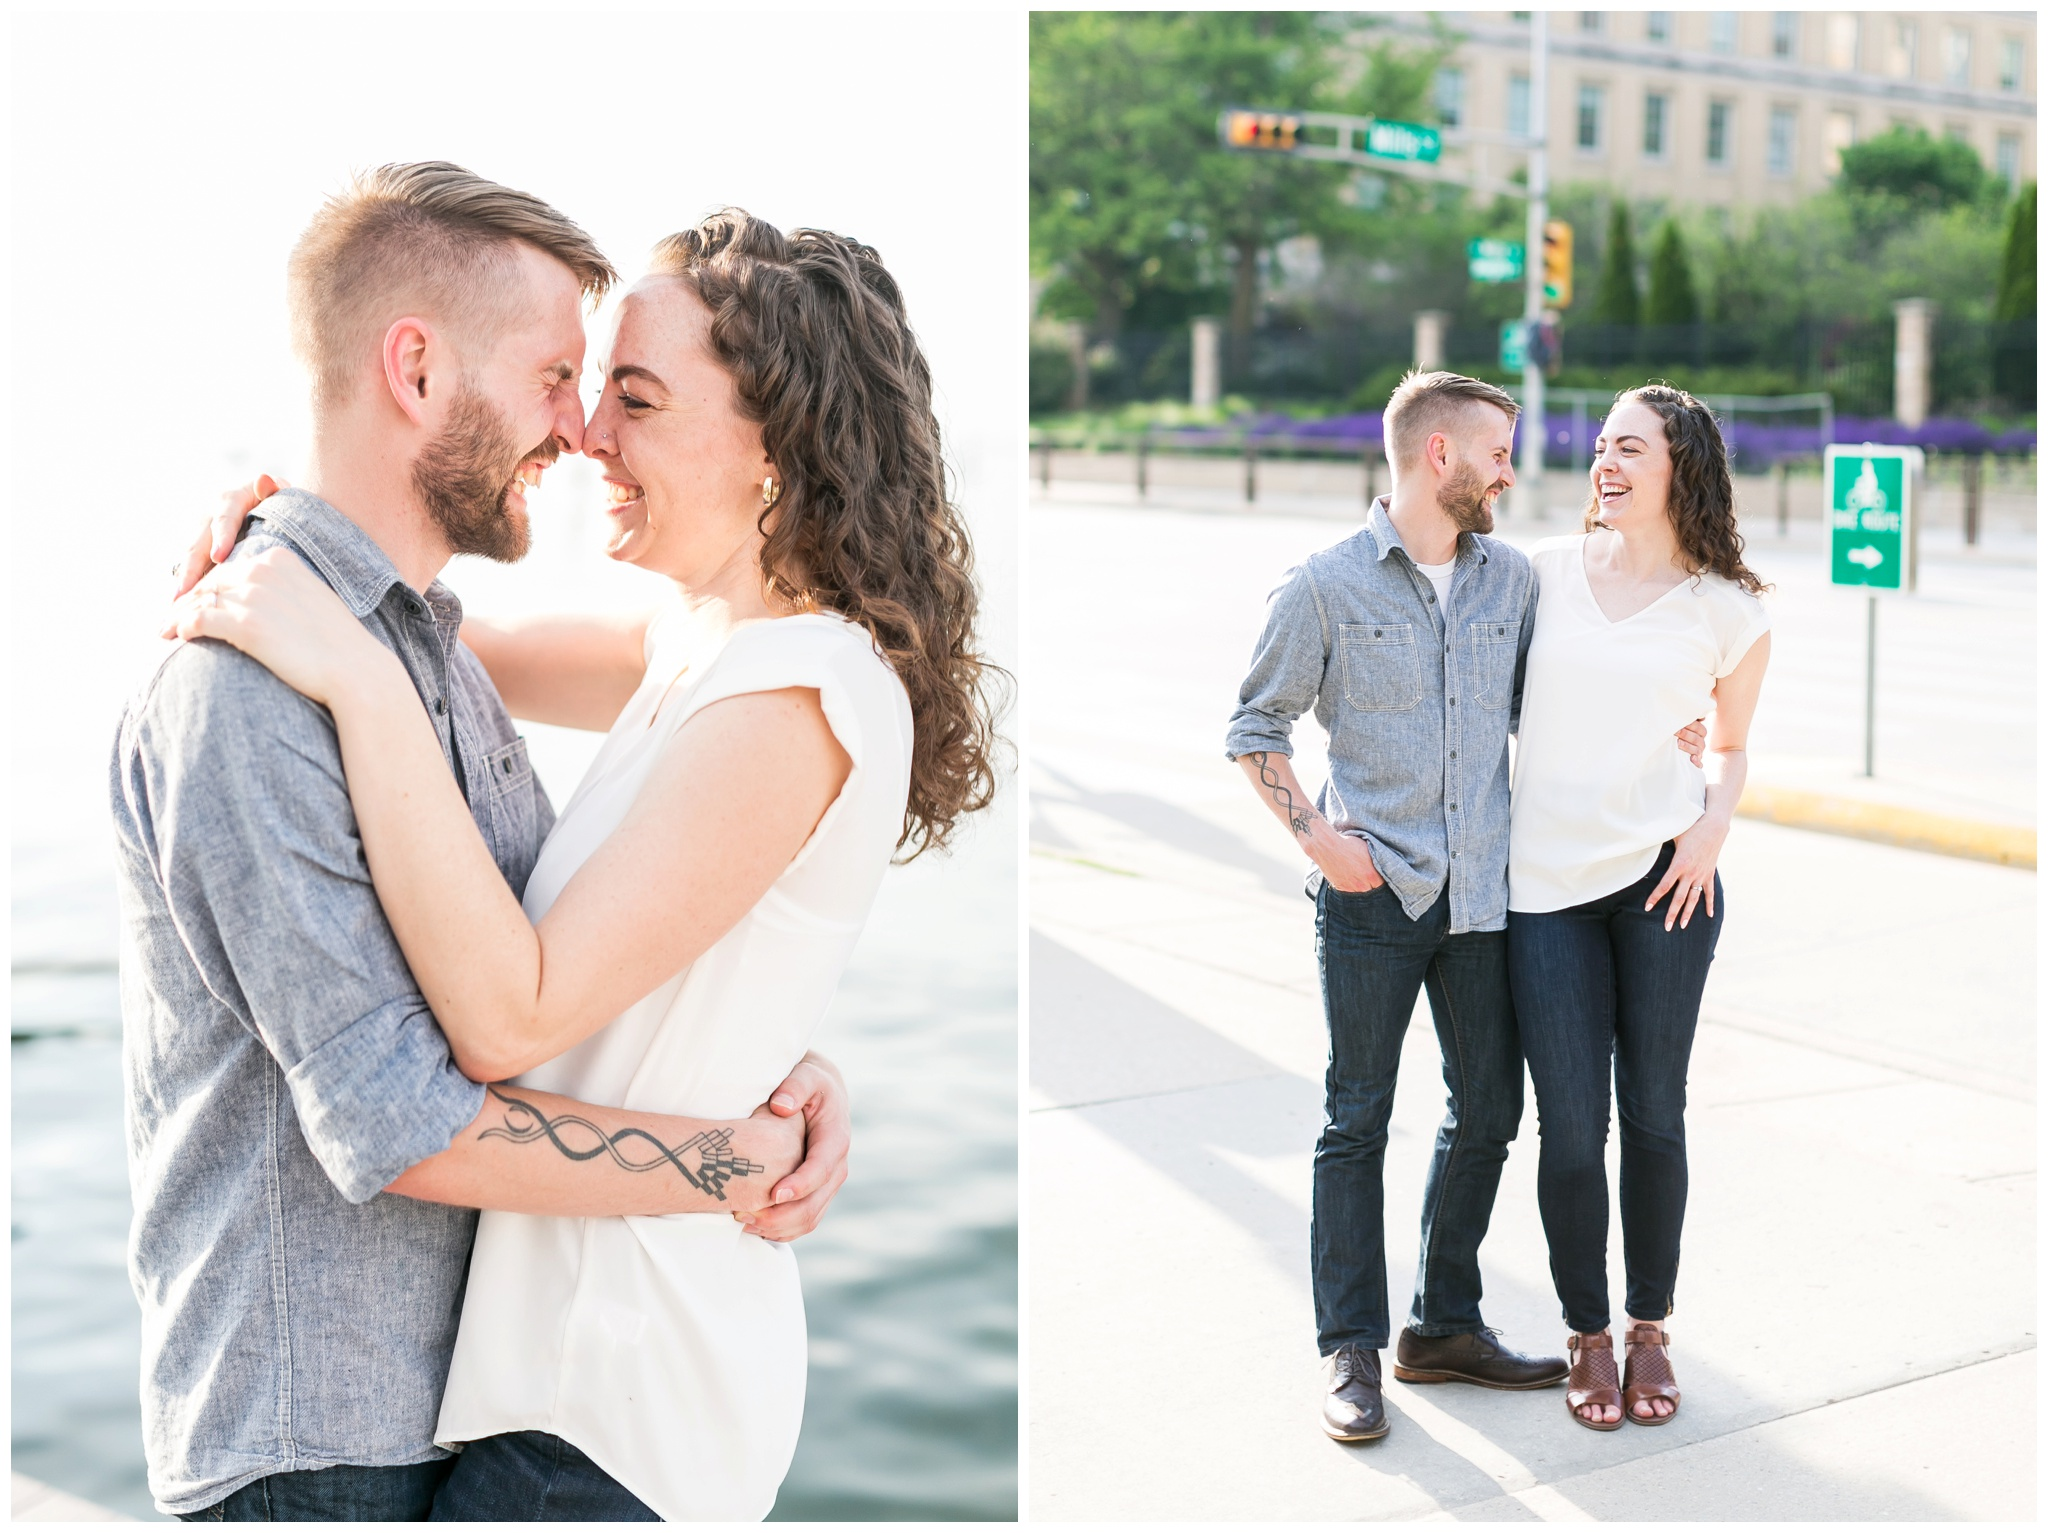 memorial_union_engagement_session_madison_wisconsin_photographers_3790.jpg